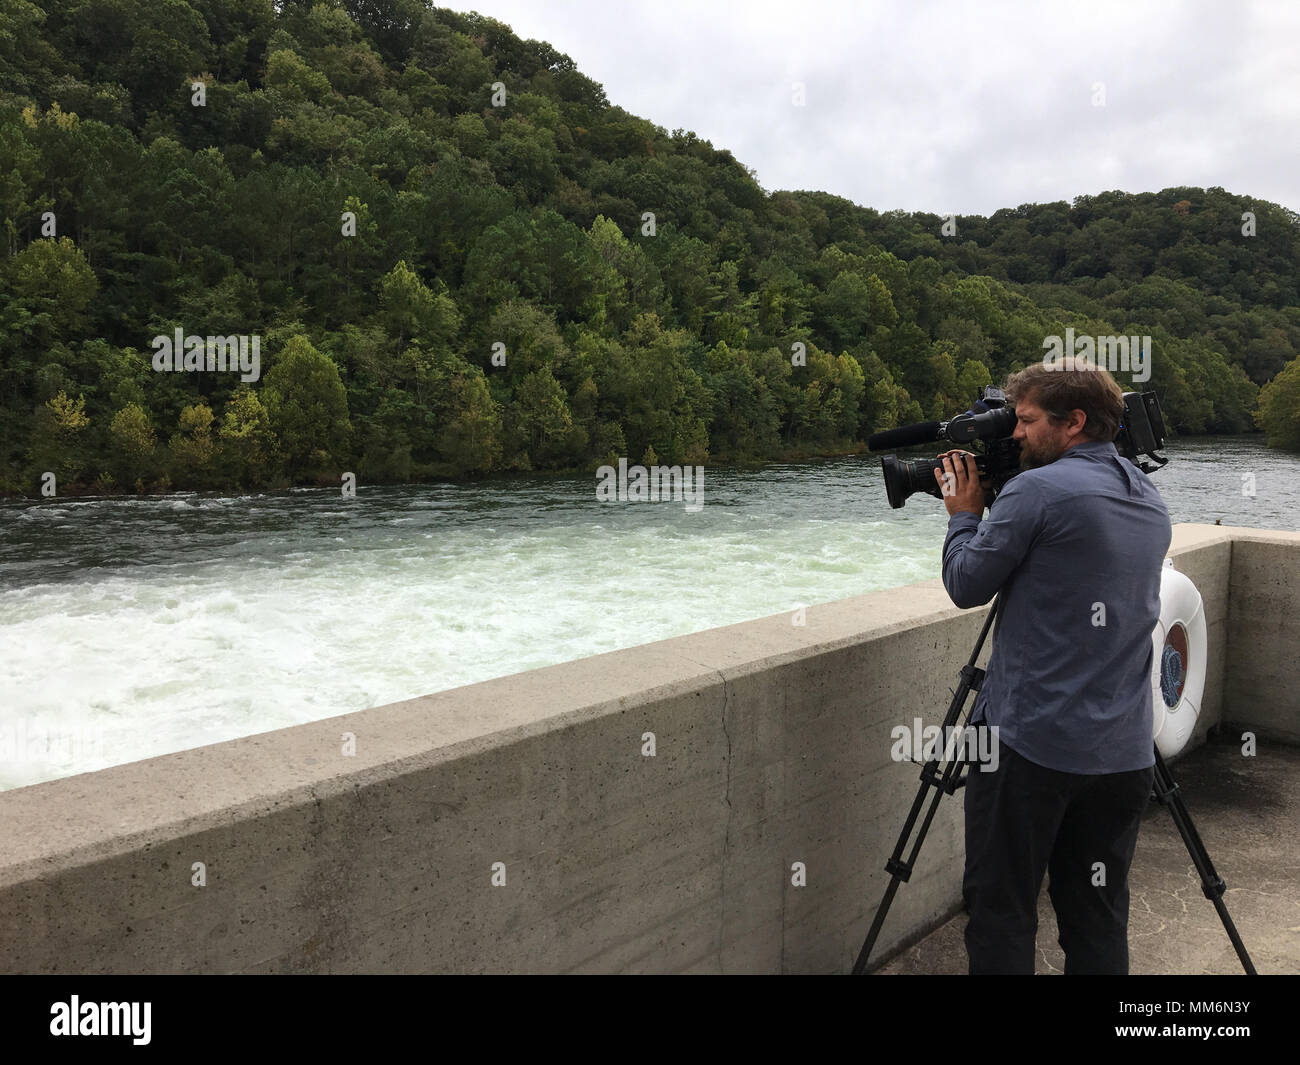 Paul Mojonnier, Tennessee Crossroads videographer, shoots footage Sept. 11, 2017 of Dale Hollow Dam's tailwater in Celina, Tenn., for an upcoming episode in early 2018 for a feature as part of the dam's 75th anniversary, also in 2018. The program airs on Nashville Public Television. (USACE photo by Sondra Carmen) - Stock Image